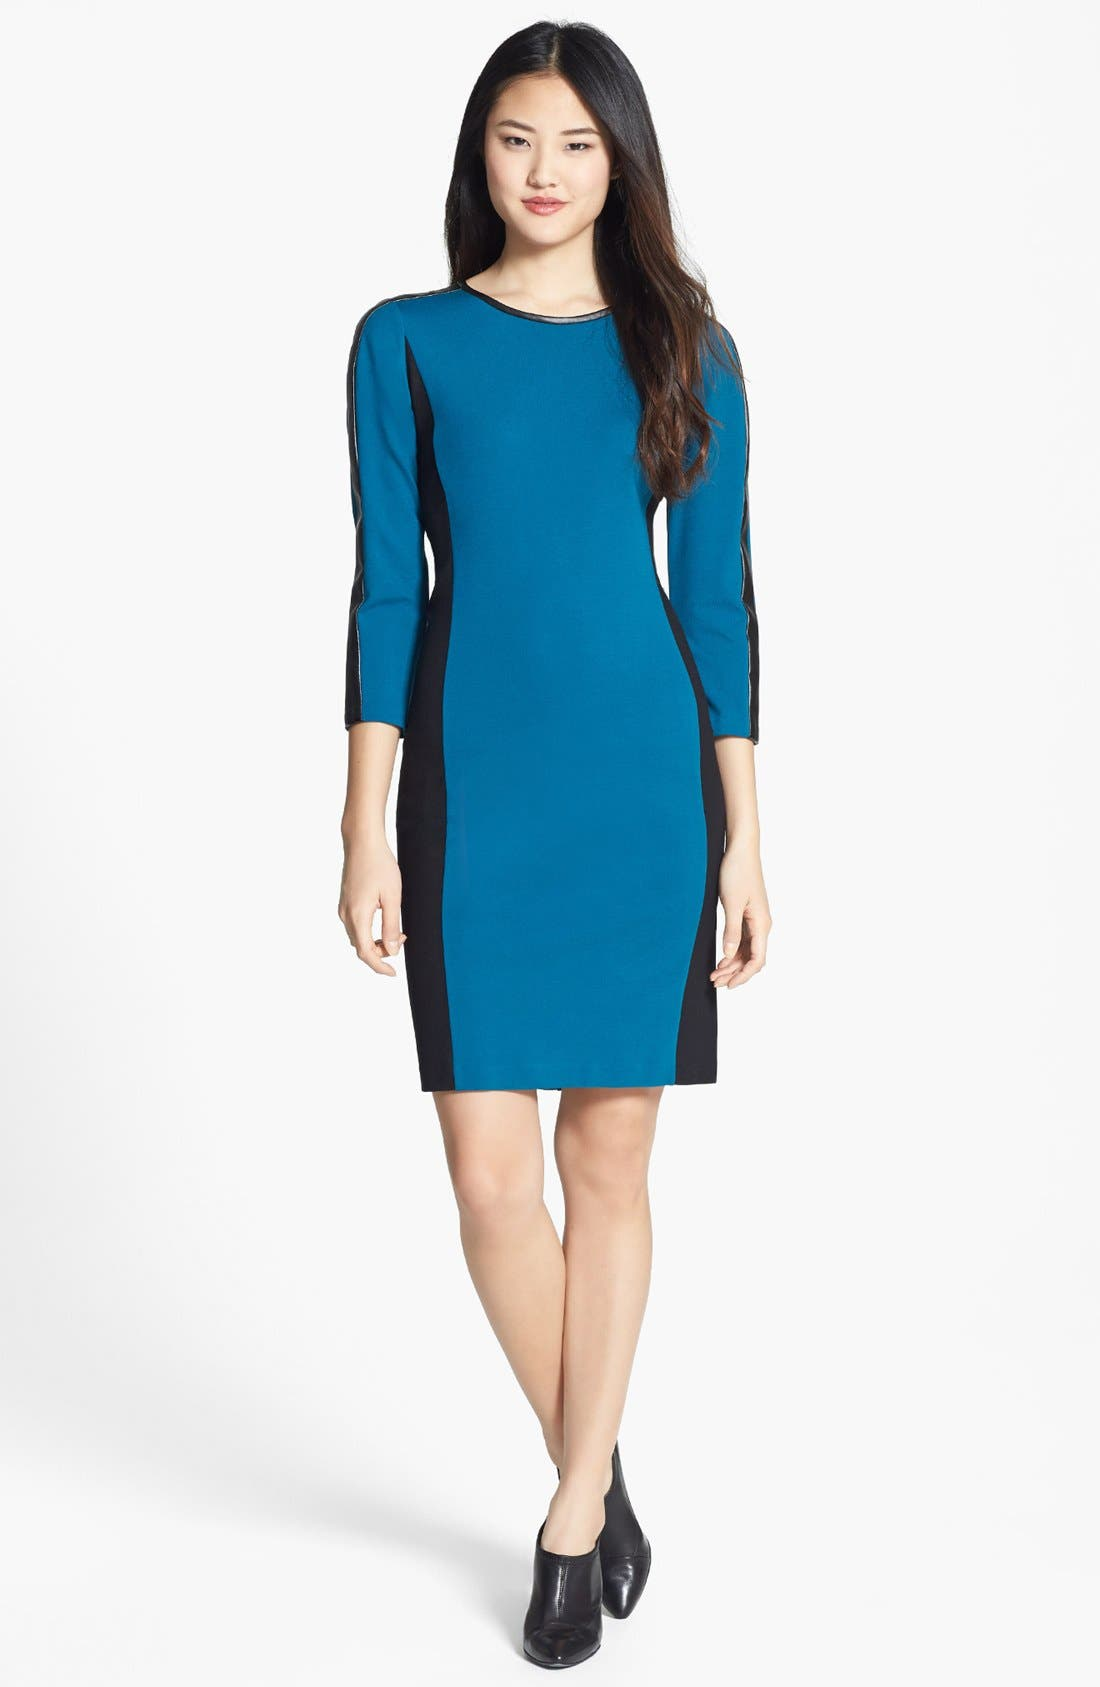 Alternate Image 1 Selected - DKNYC Colorblock Faux Leather Trim Dress